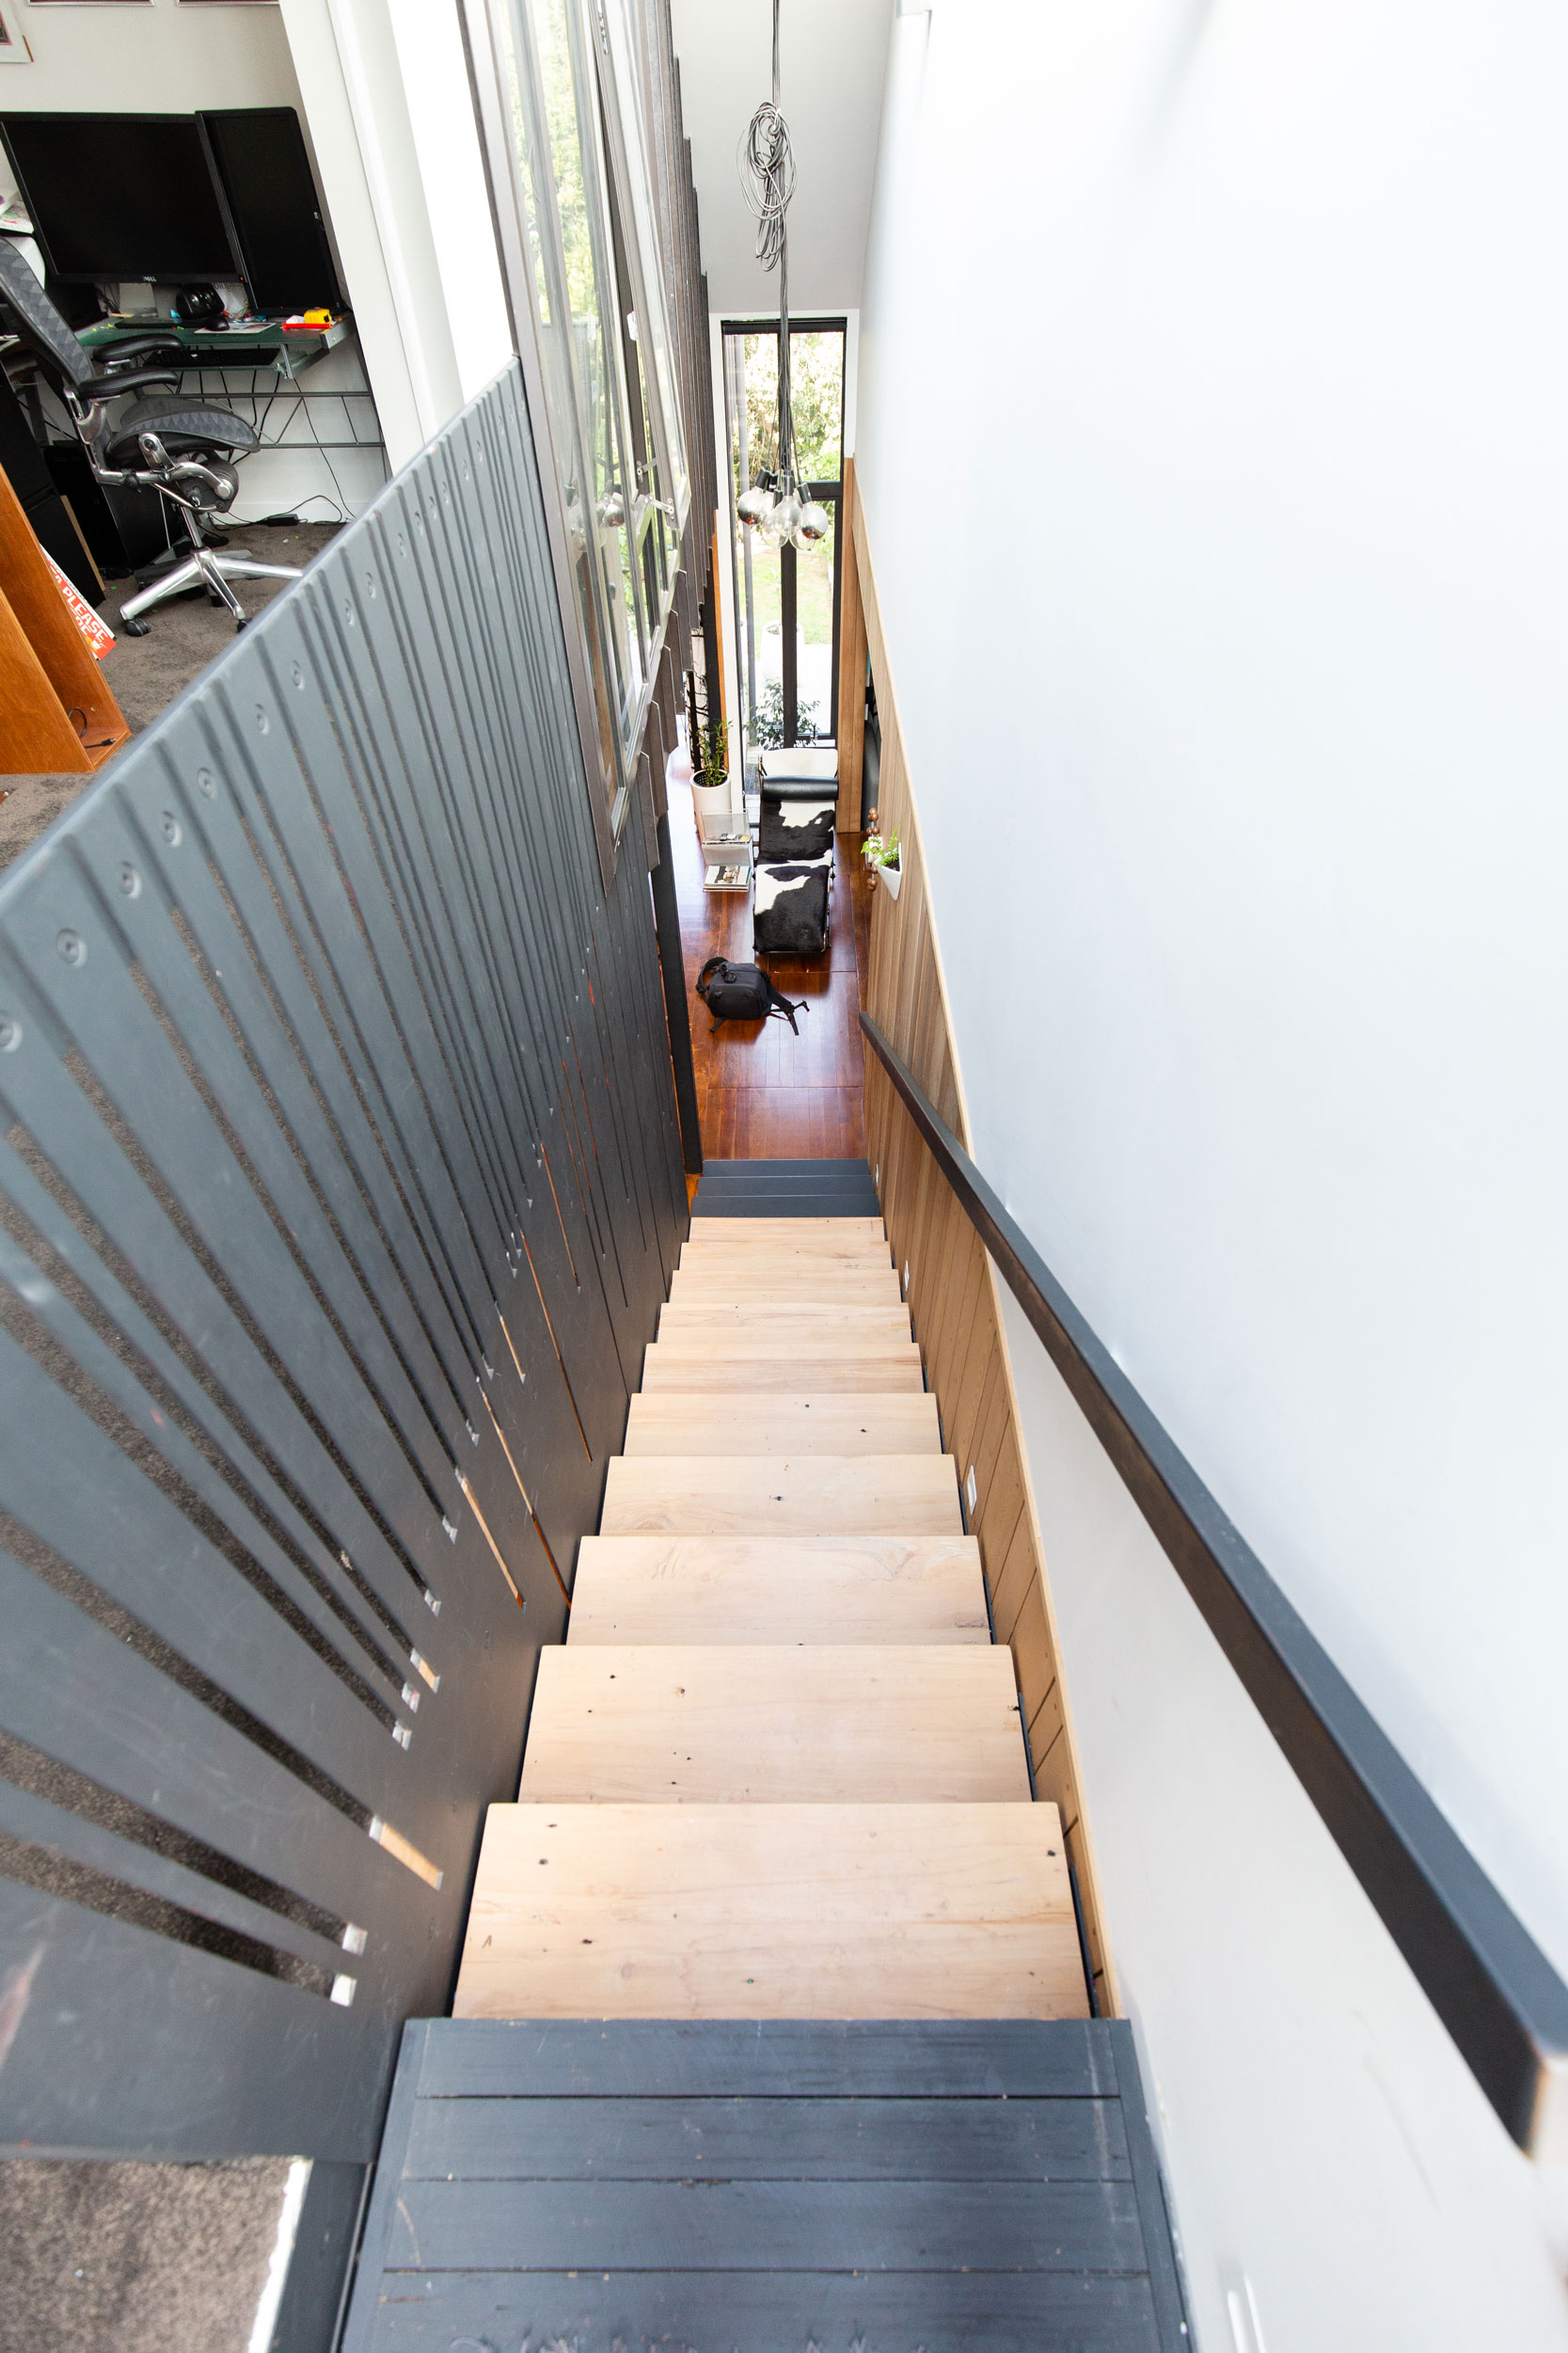 Slotted metal balustrade was designed by Stairworks to allow light through to the downstairs